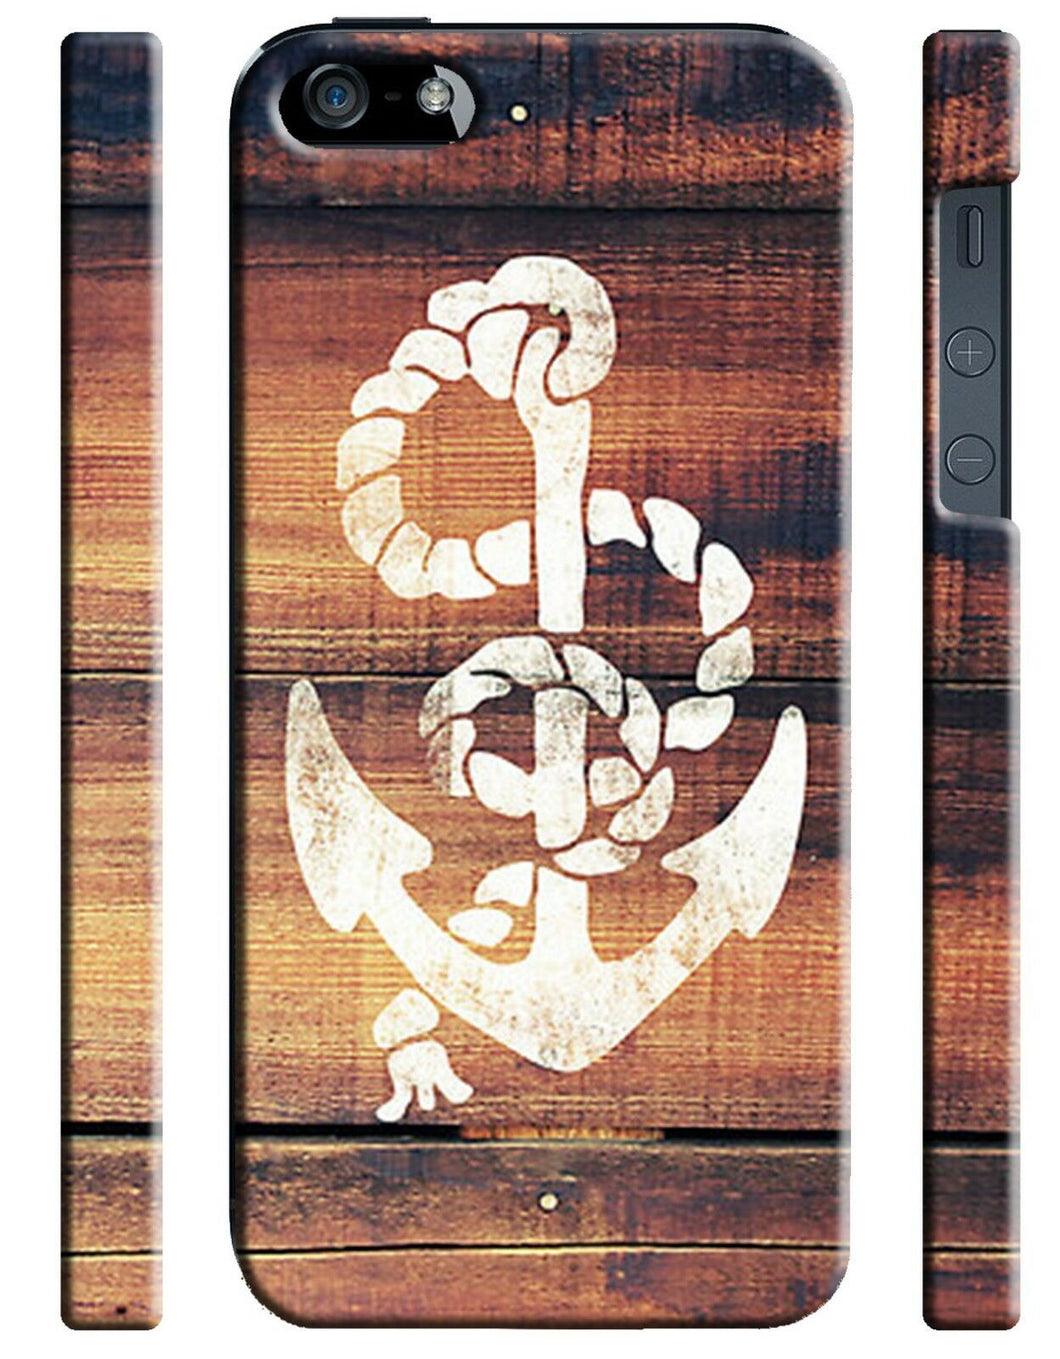 Anchor on Wooden Wall Case Cover for Iphone 4 4s 5 5s 5c 6 6S + Plus